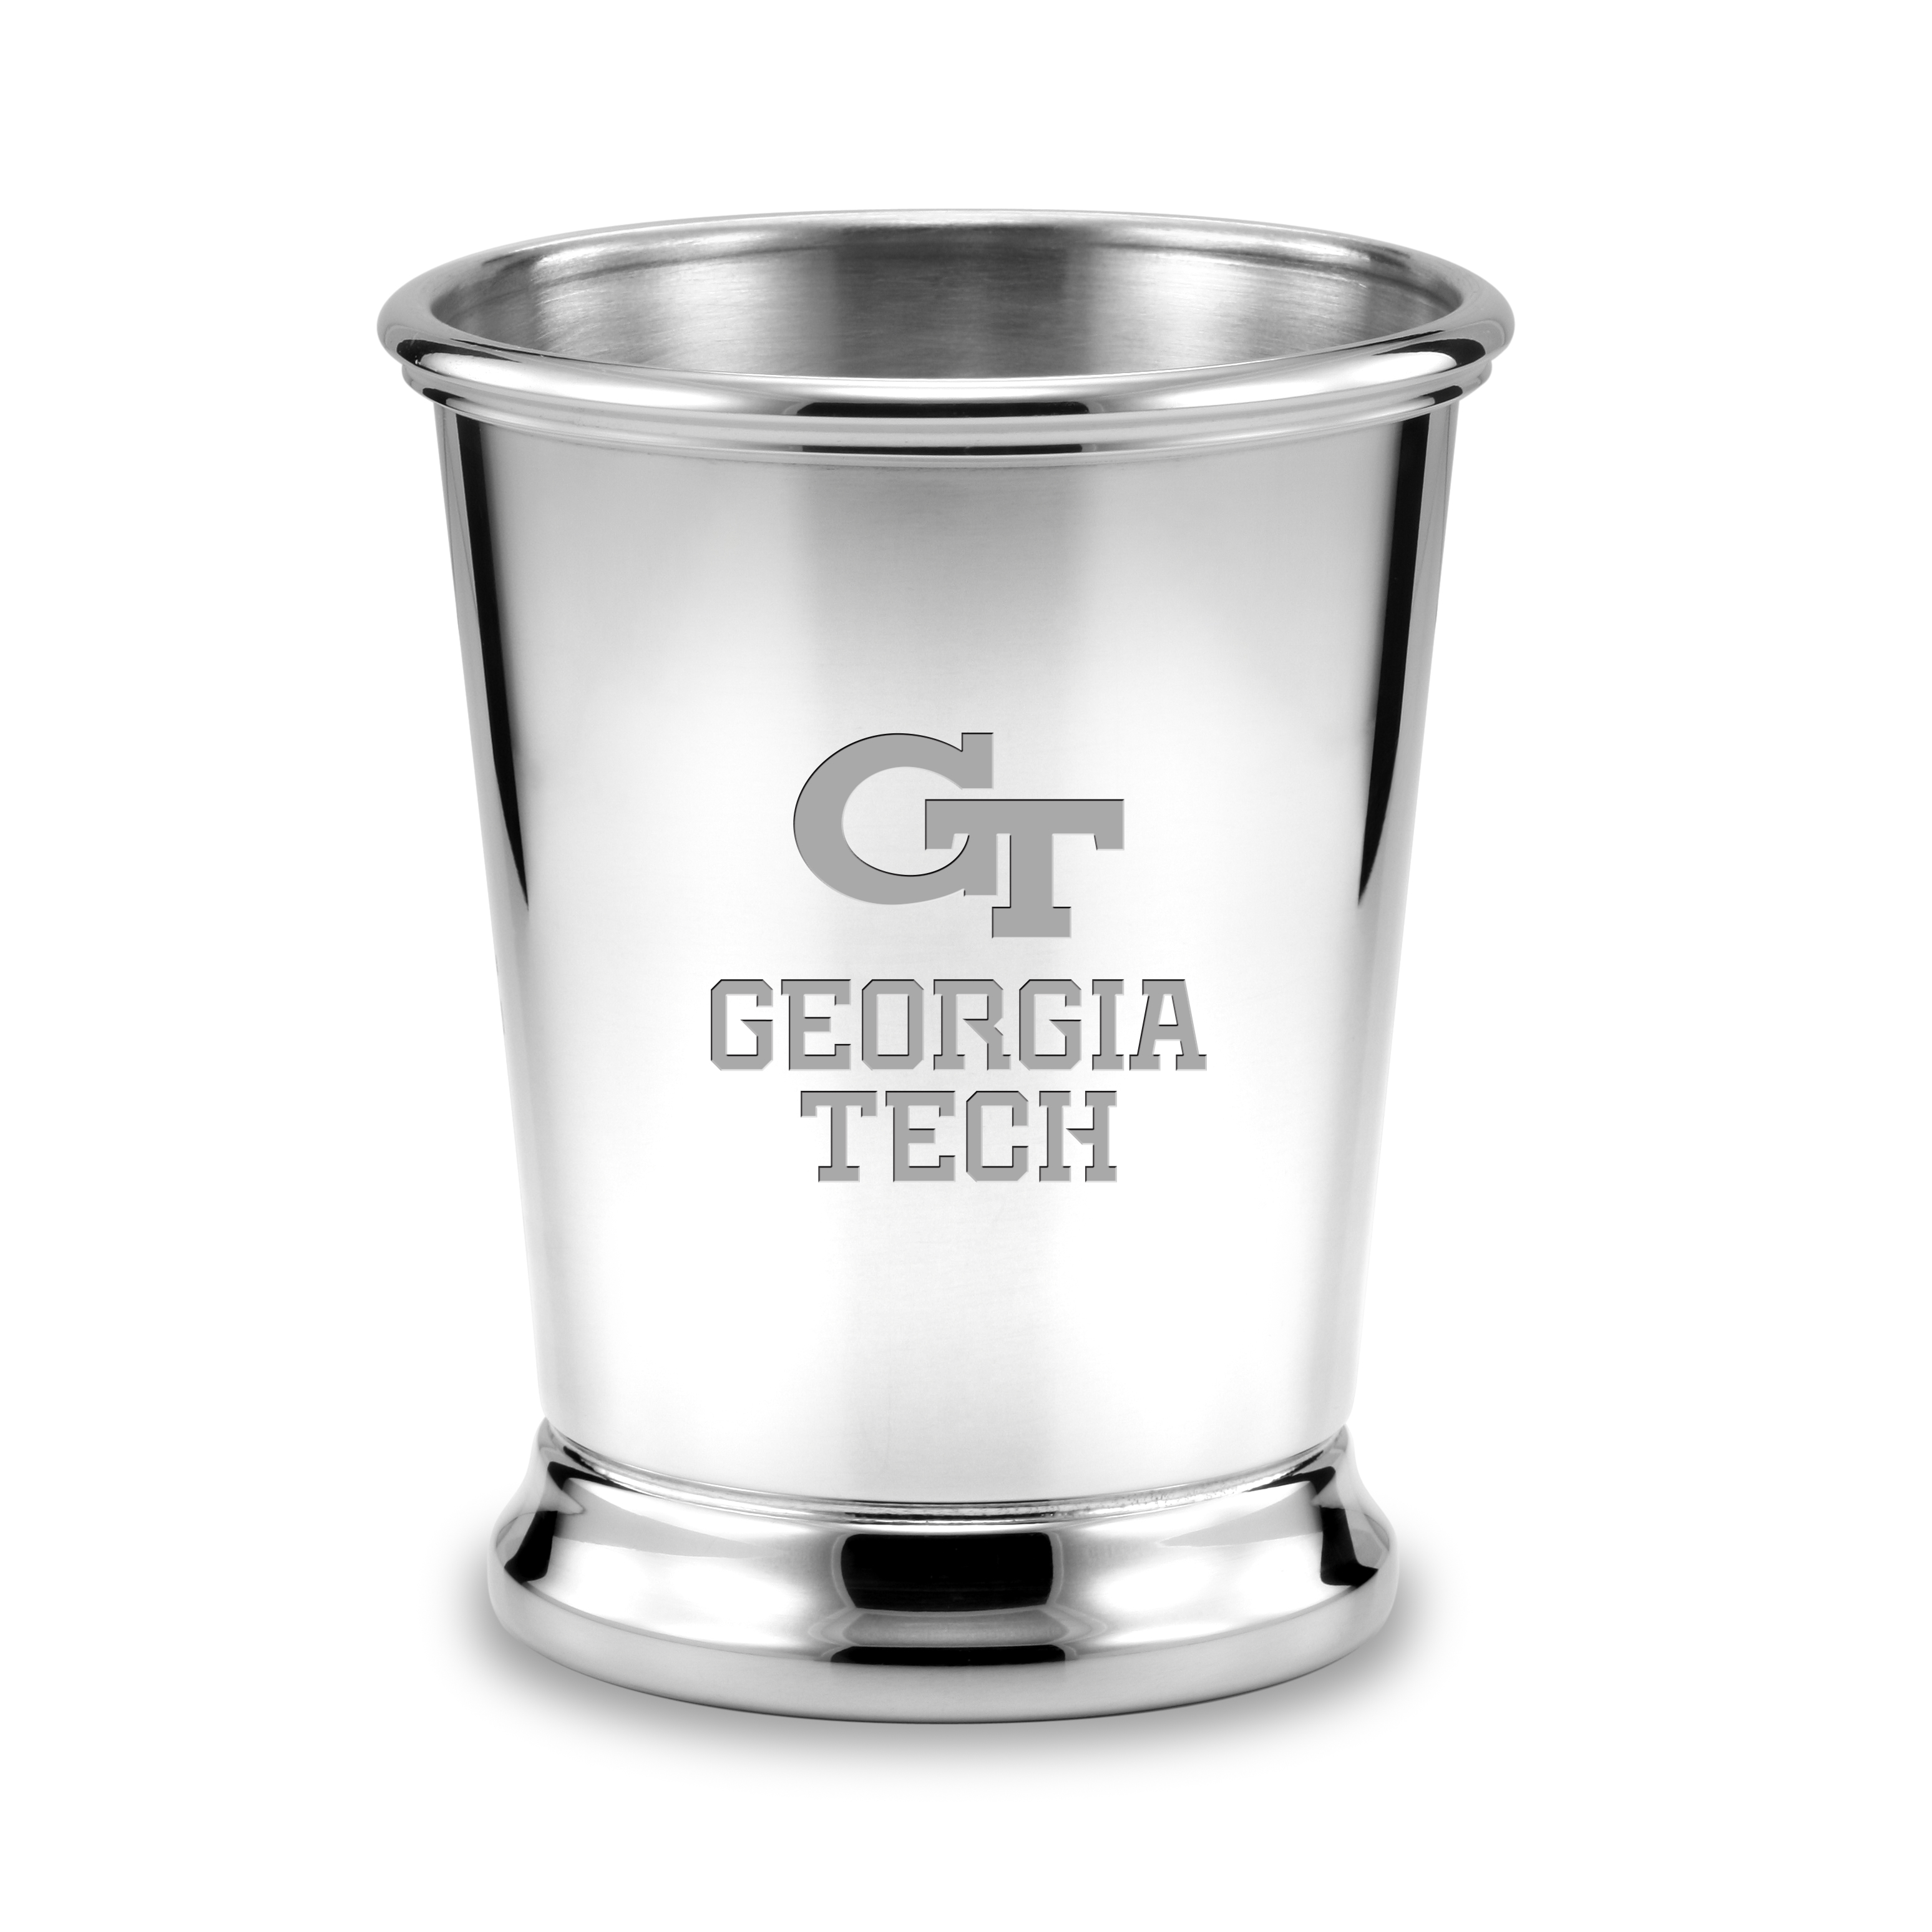 Georgia Tech Pewter Julep Cup Image-1